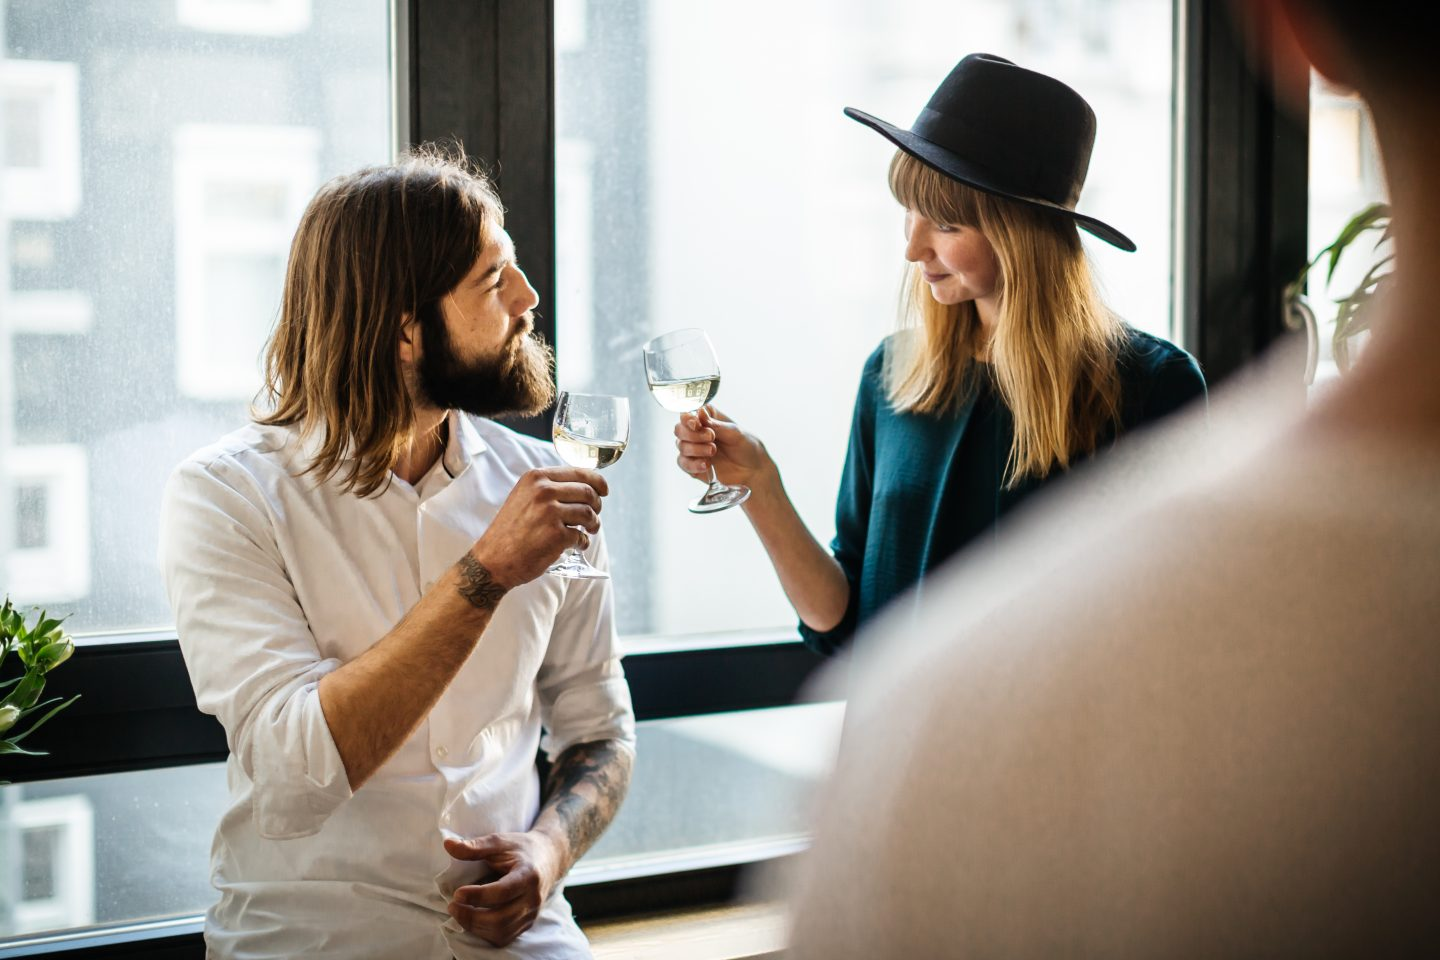 Two friends standing close toasting with glasses of wine. Balance, enjoying life, healthy lifestyle, trade-offs, GamePlan A.